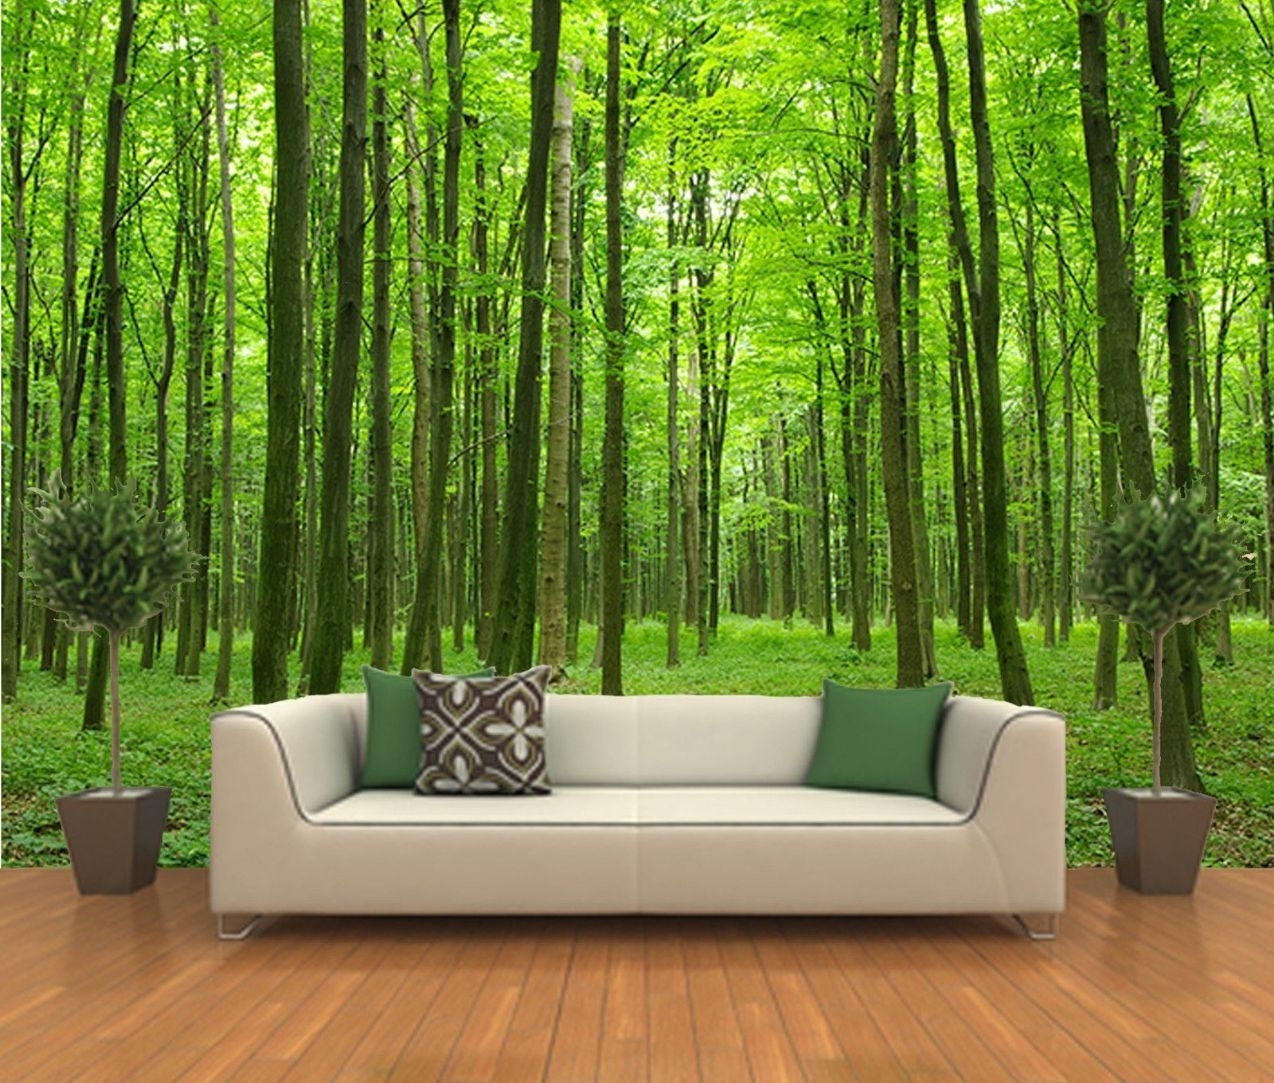 Peel And Stick Photo Wall Mural, Decor Wallpapers Forest Art - 504 intended for Most Up-to-Date Murals Wall Accents